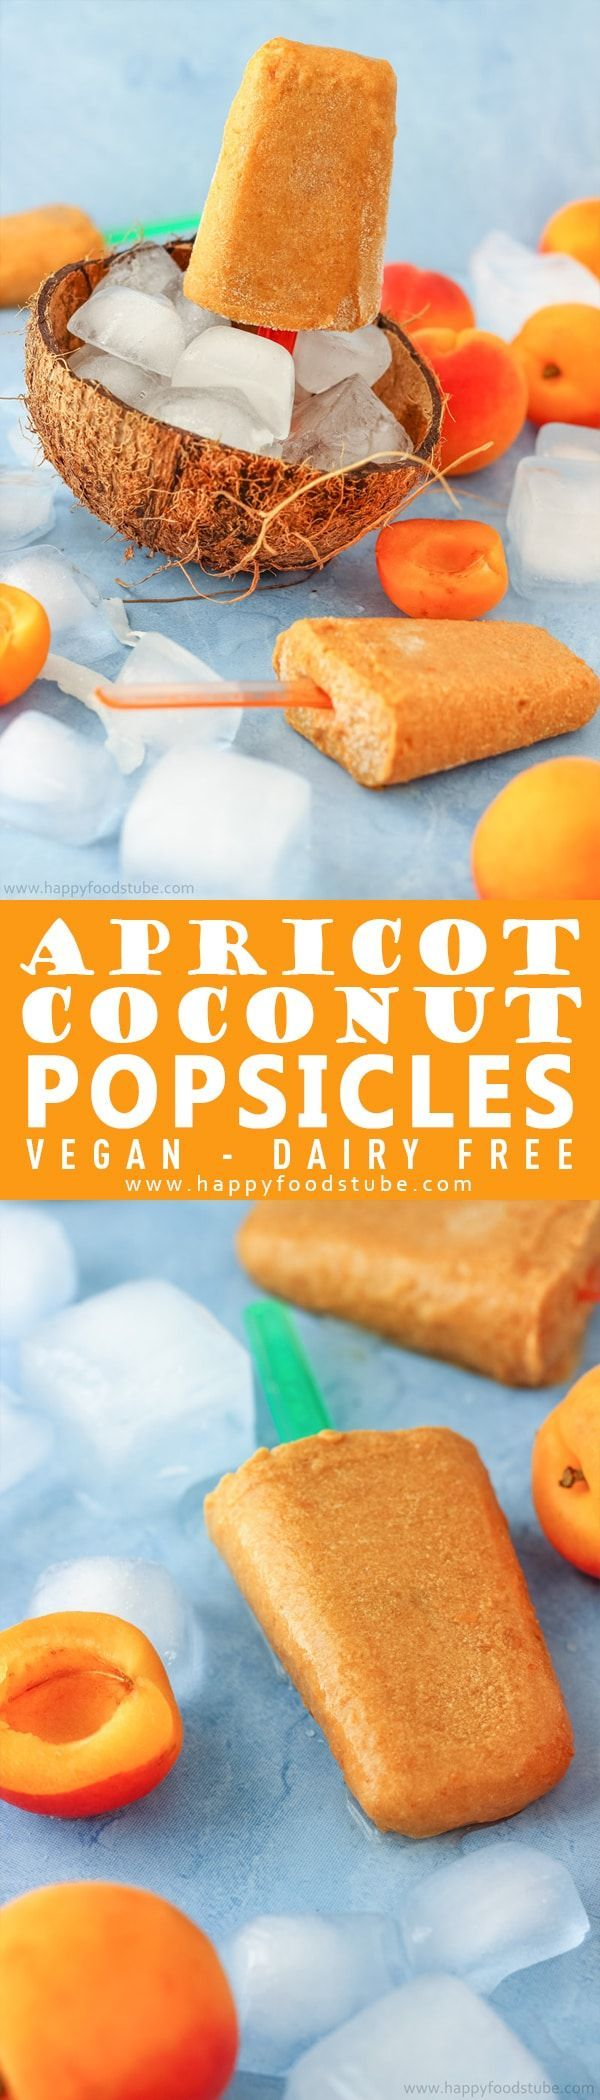 These apricot coconut popsicles are the perfect frozen treat. They are rich, refreshing and quick to make. Only 4-ingredients and ready in 10-minutes + vegan and dairy-free via @happyfoodstube